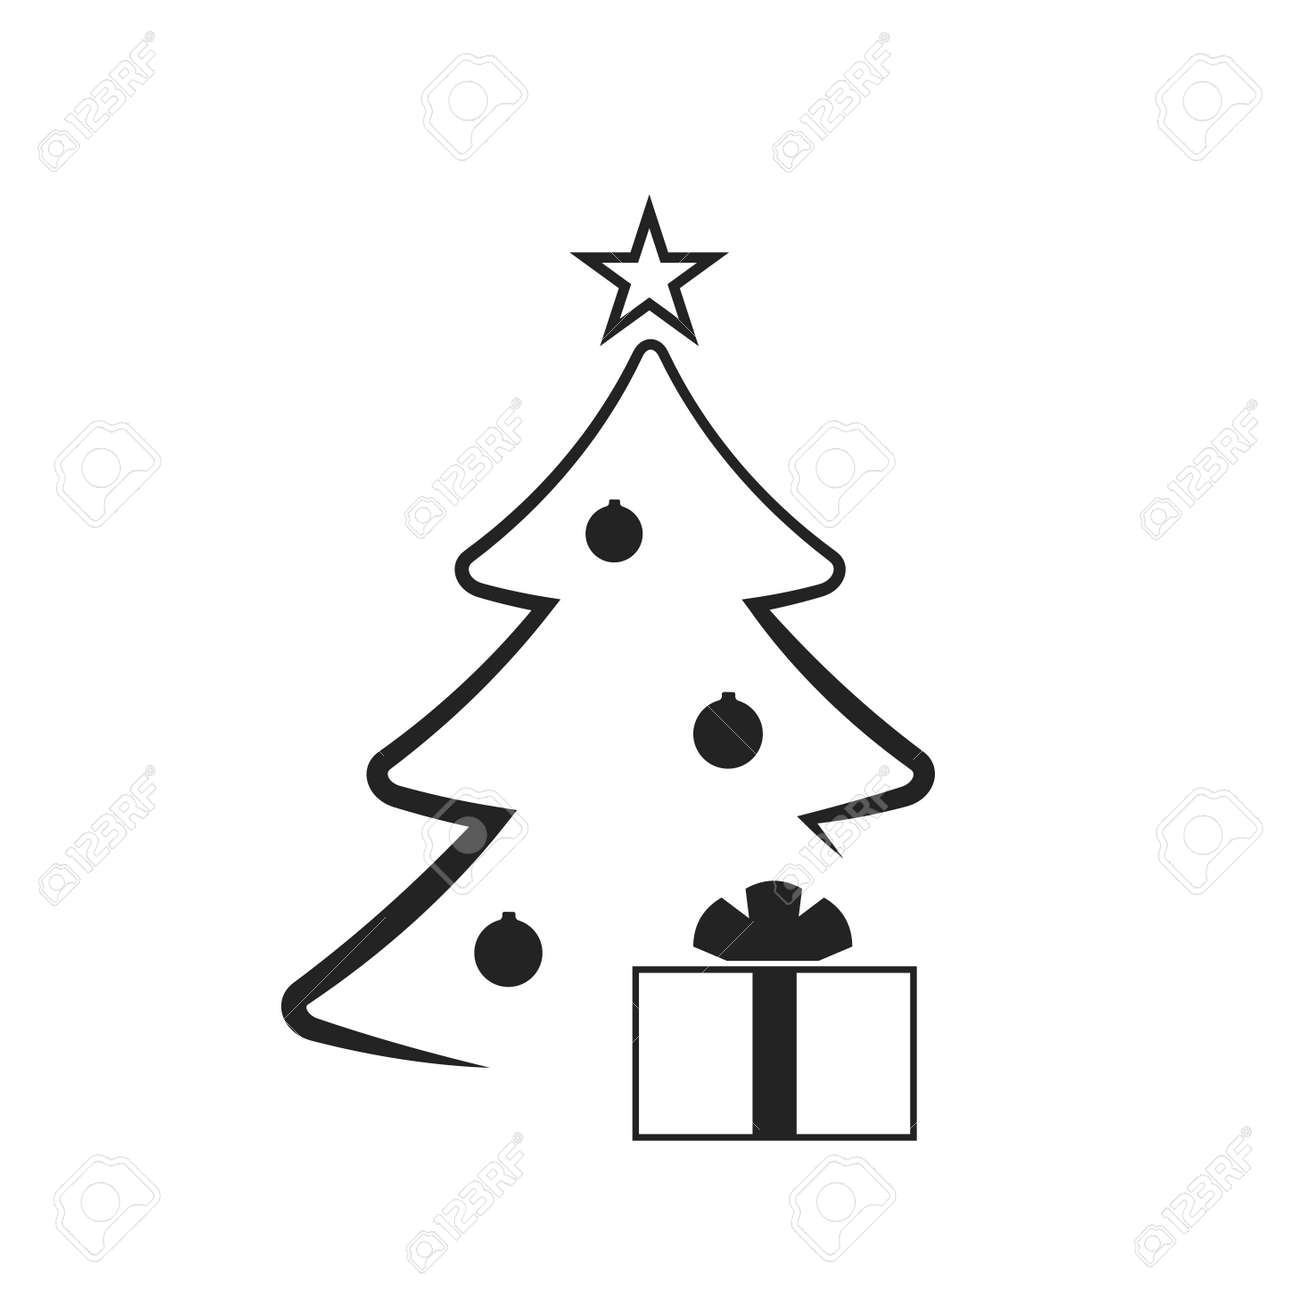 Christmas Tree With Balls Star Gift Cartoon Icon Black Silhouette Royalty Free Cliparts Vectors And Stock Illustration Image 66279869 Free set of vector cartoon black and white cats on pinky background with hearts and different floral decoration. christmas tree with balls star gift cartoon icon black silhouette